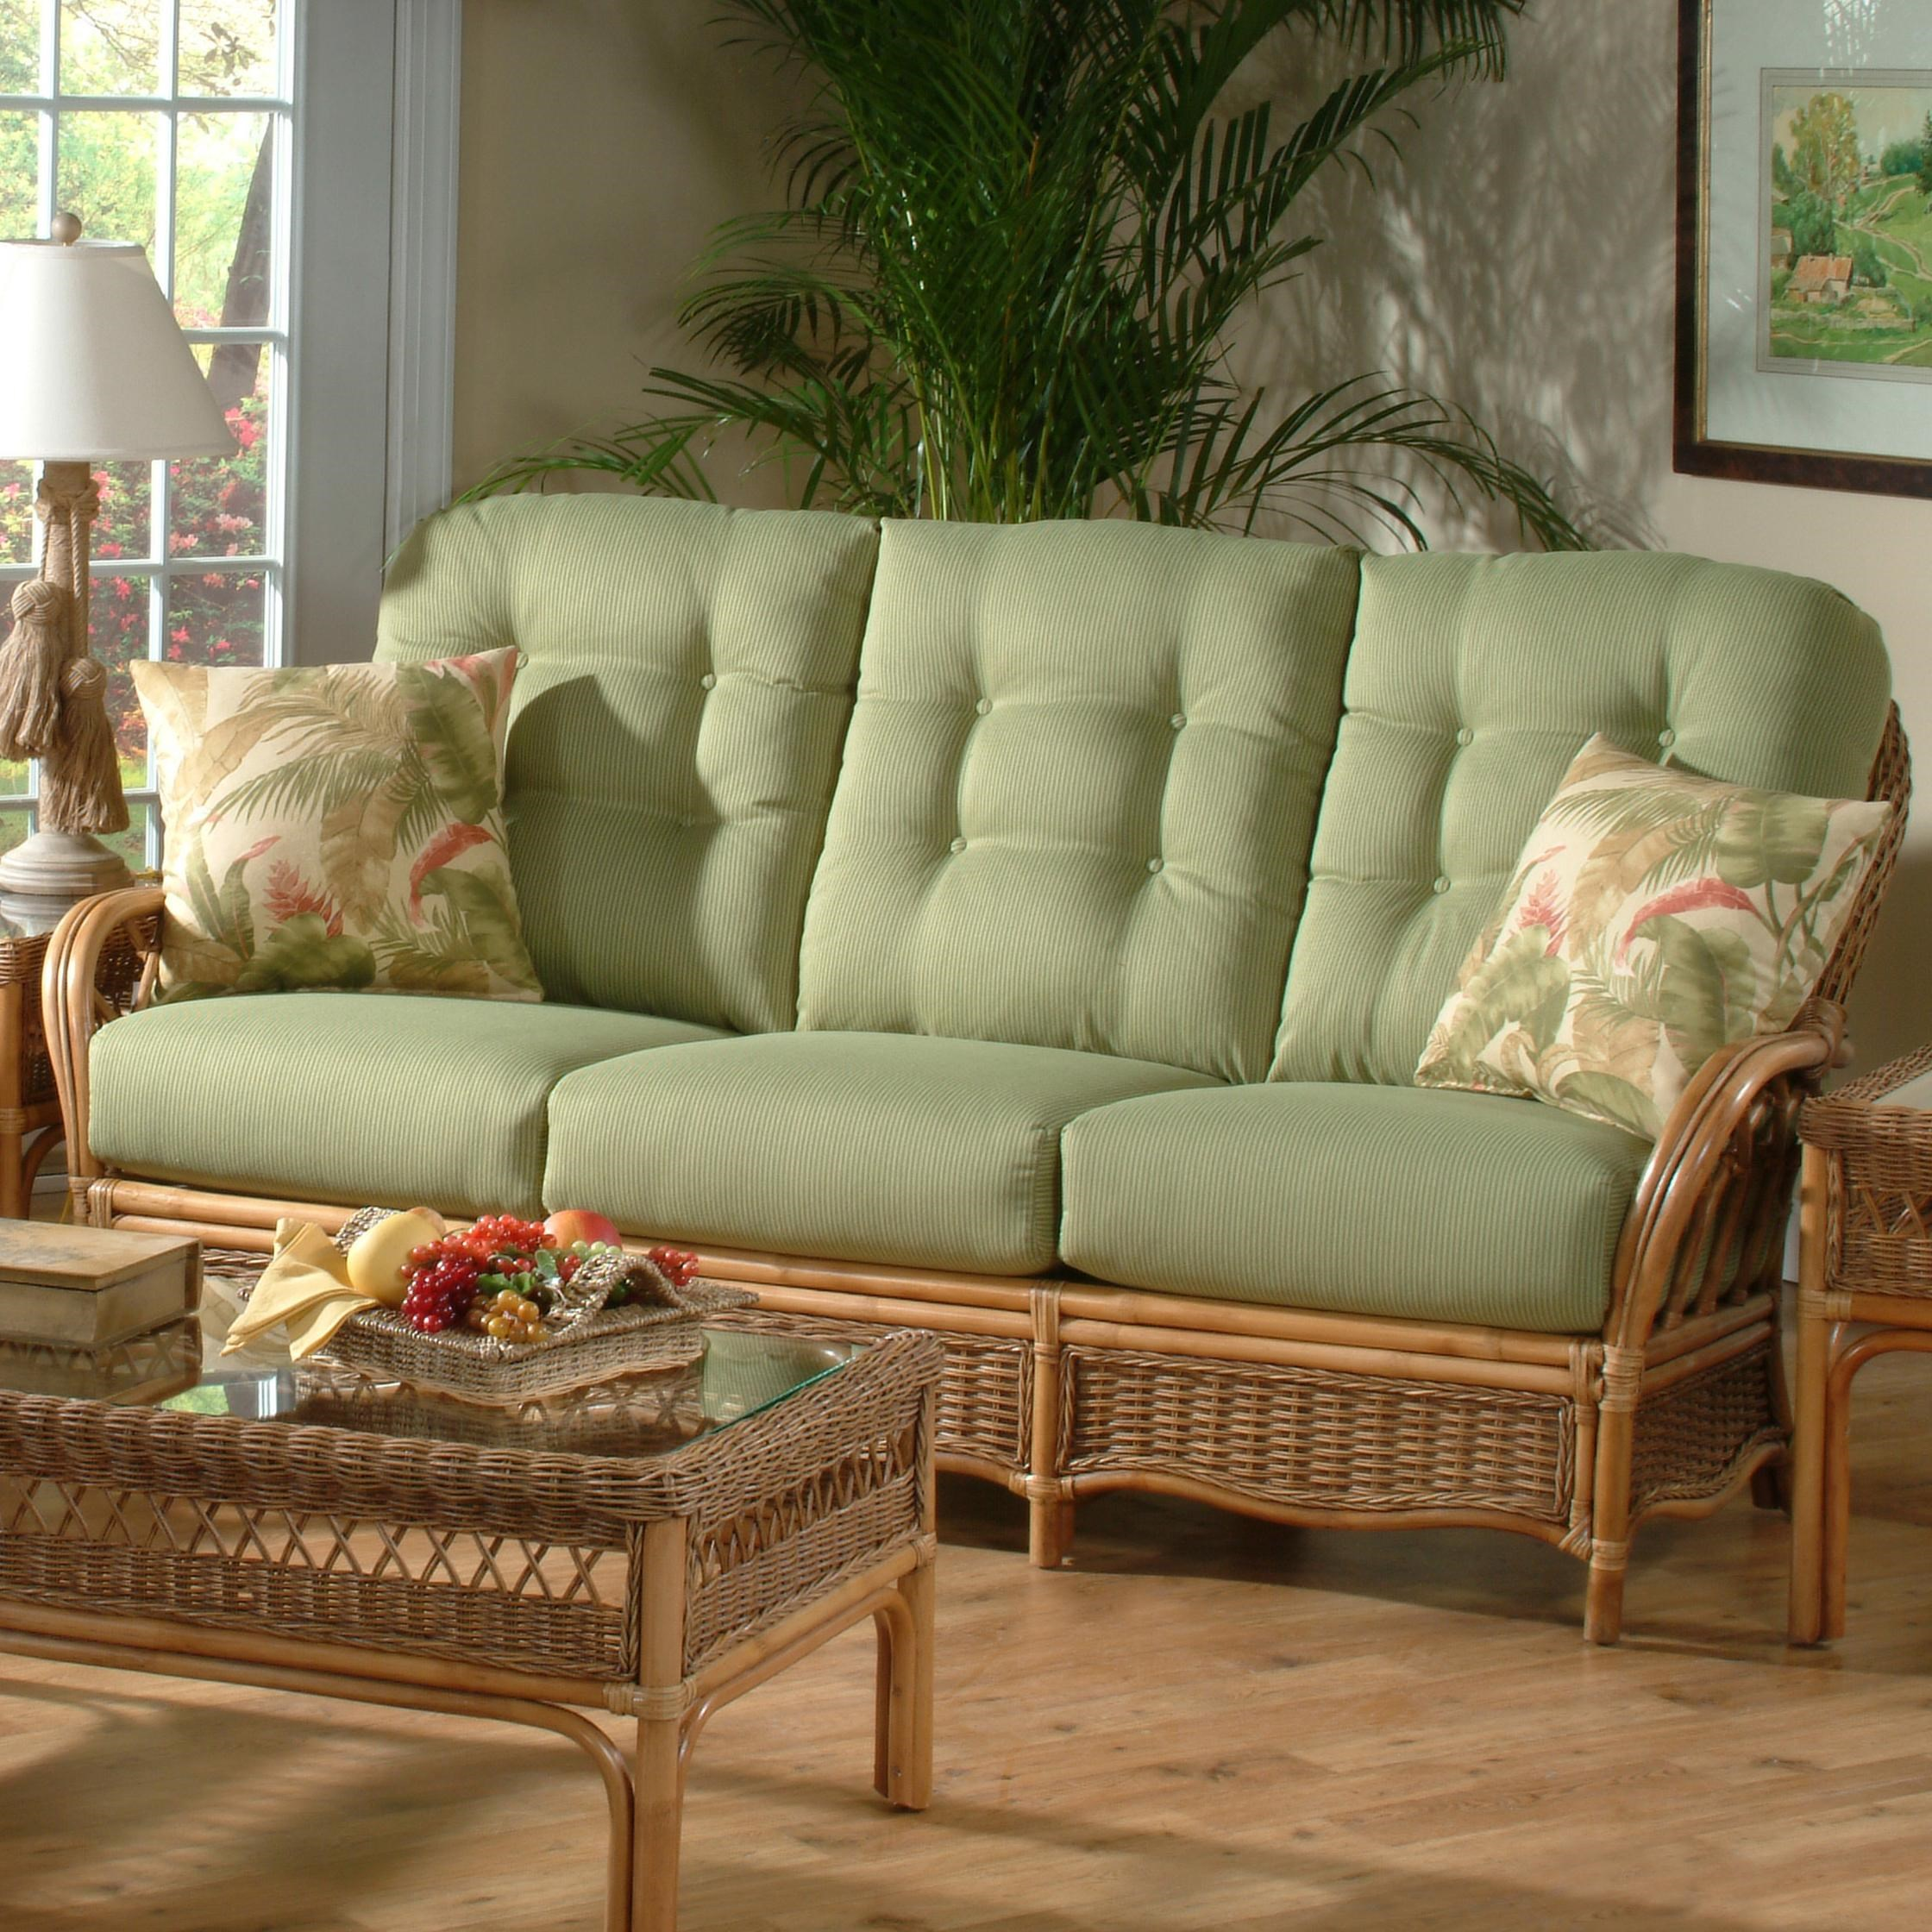 Rattan Sofa Near Me Vendor 10 Everglade 905 011 Tropical Rattan Sofa Becker